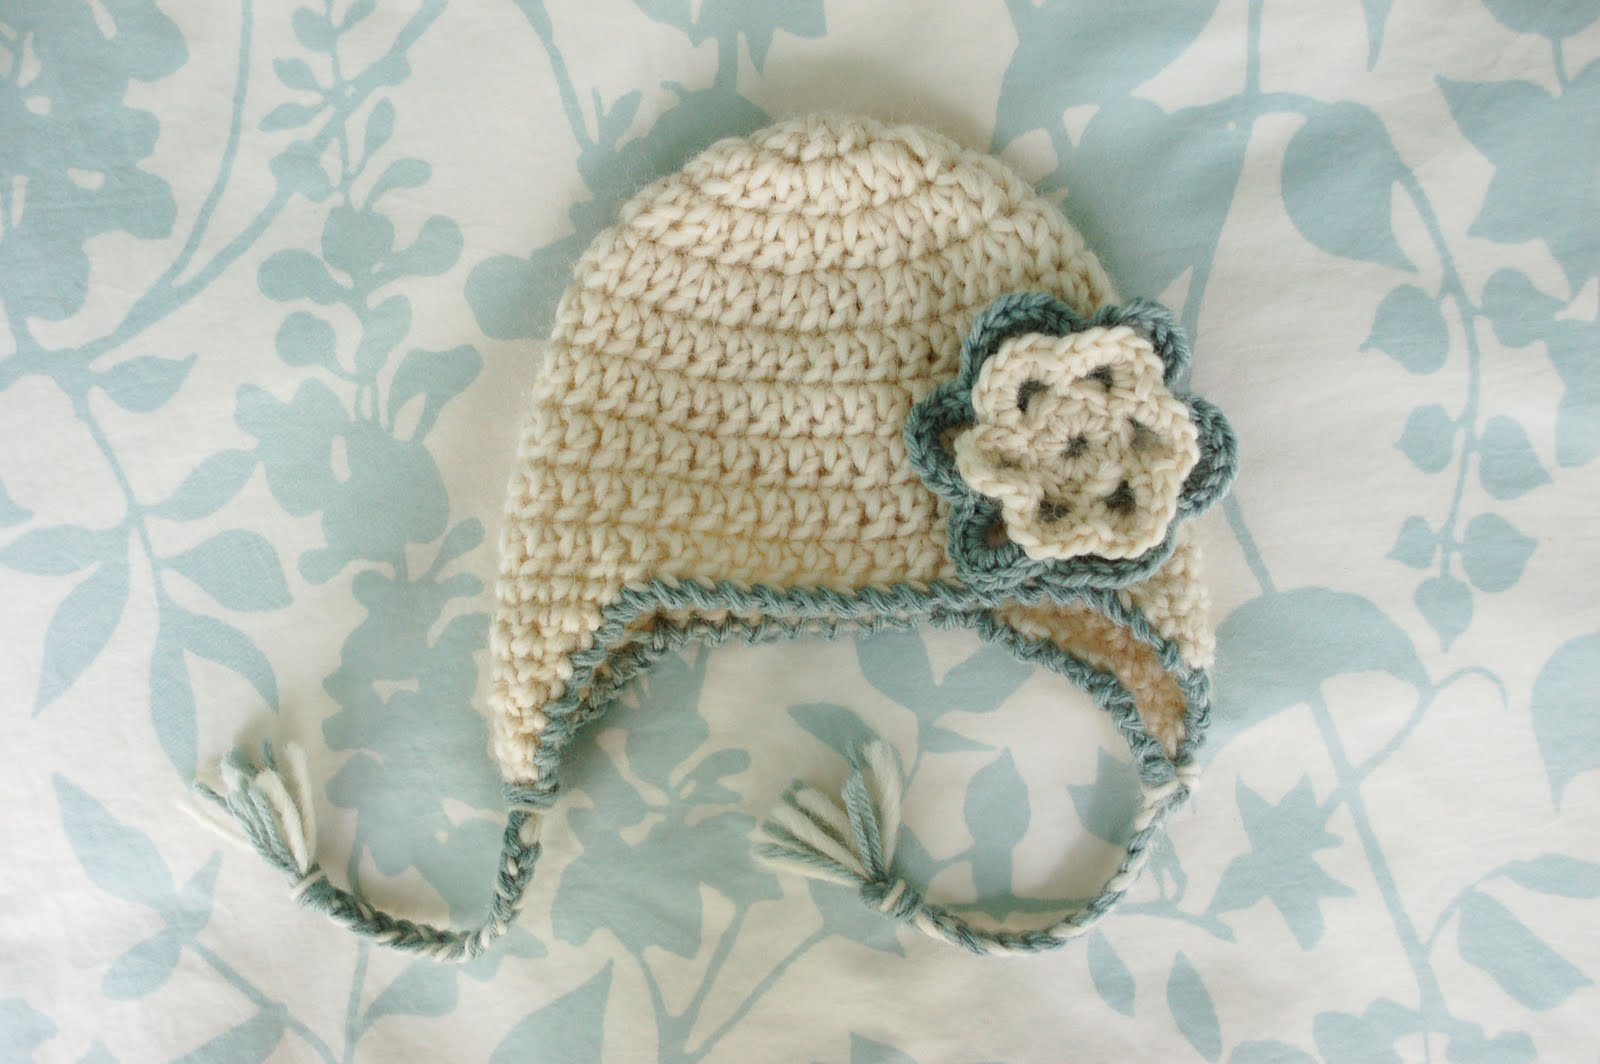 Free Crochet Pattern For A Newborn Hat : Crochet For Free: Newborn Earflap Hat